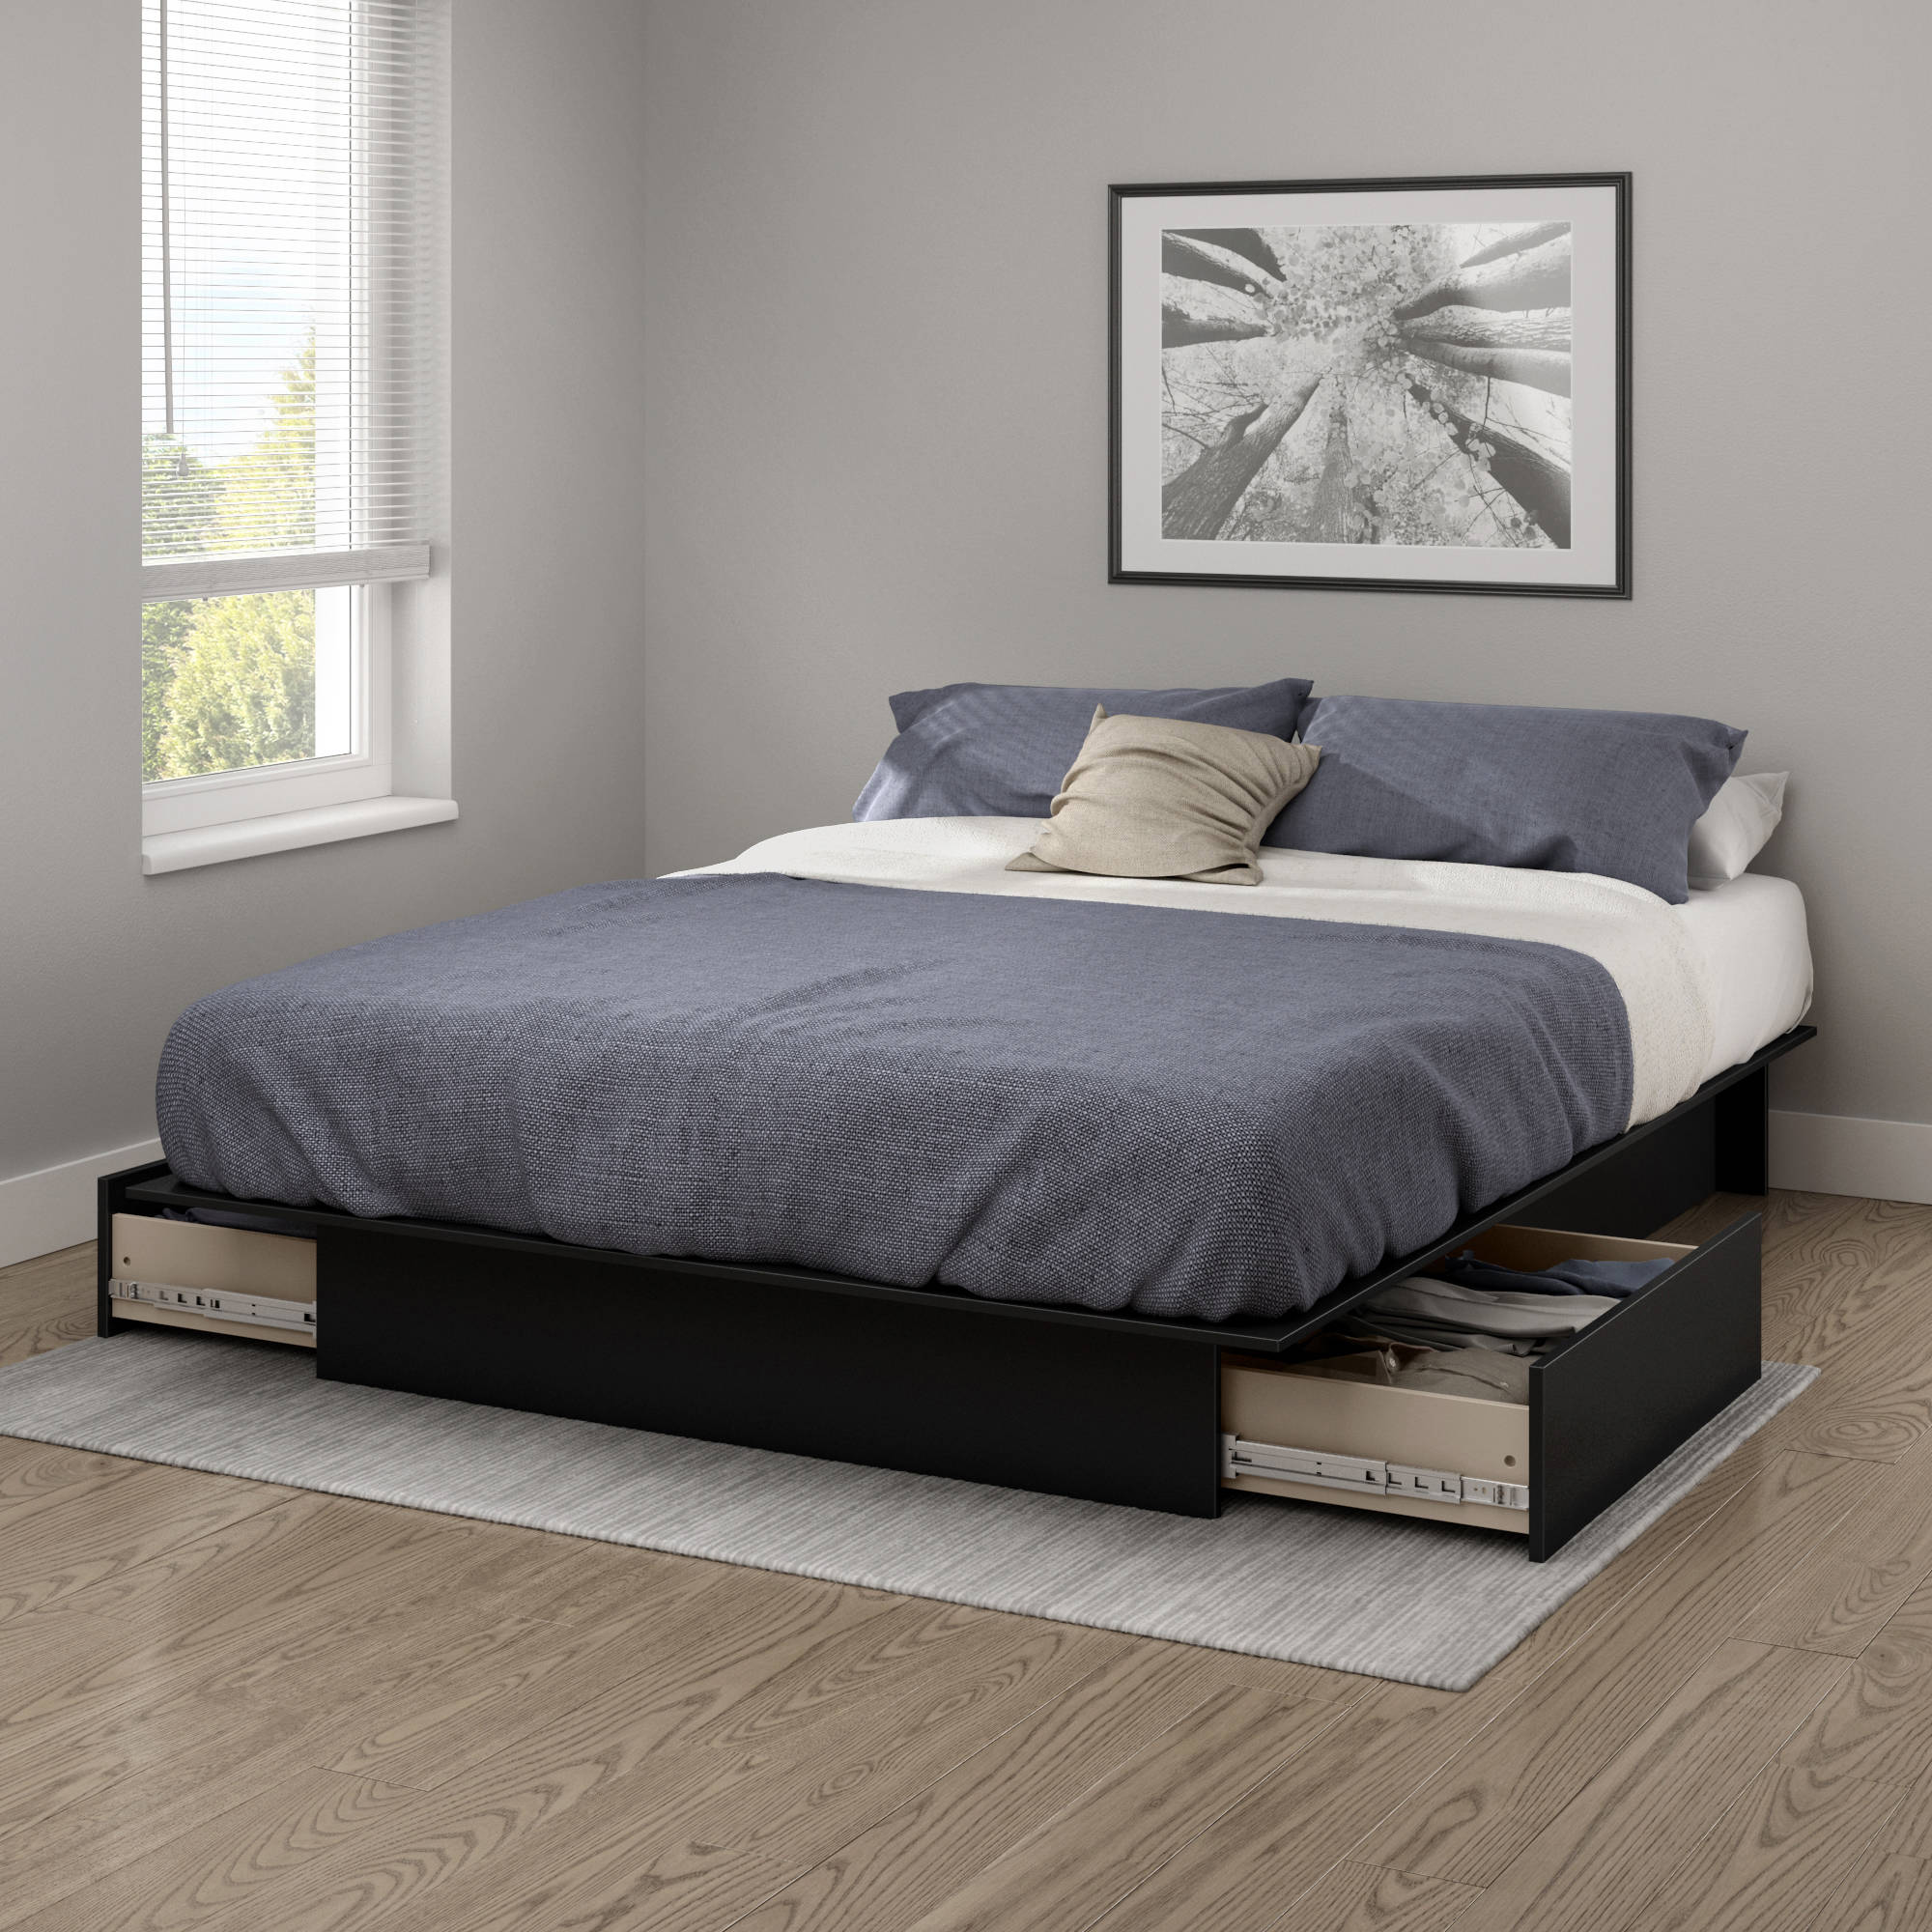 South Shore Soho Storage Queen Platform Bed Review